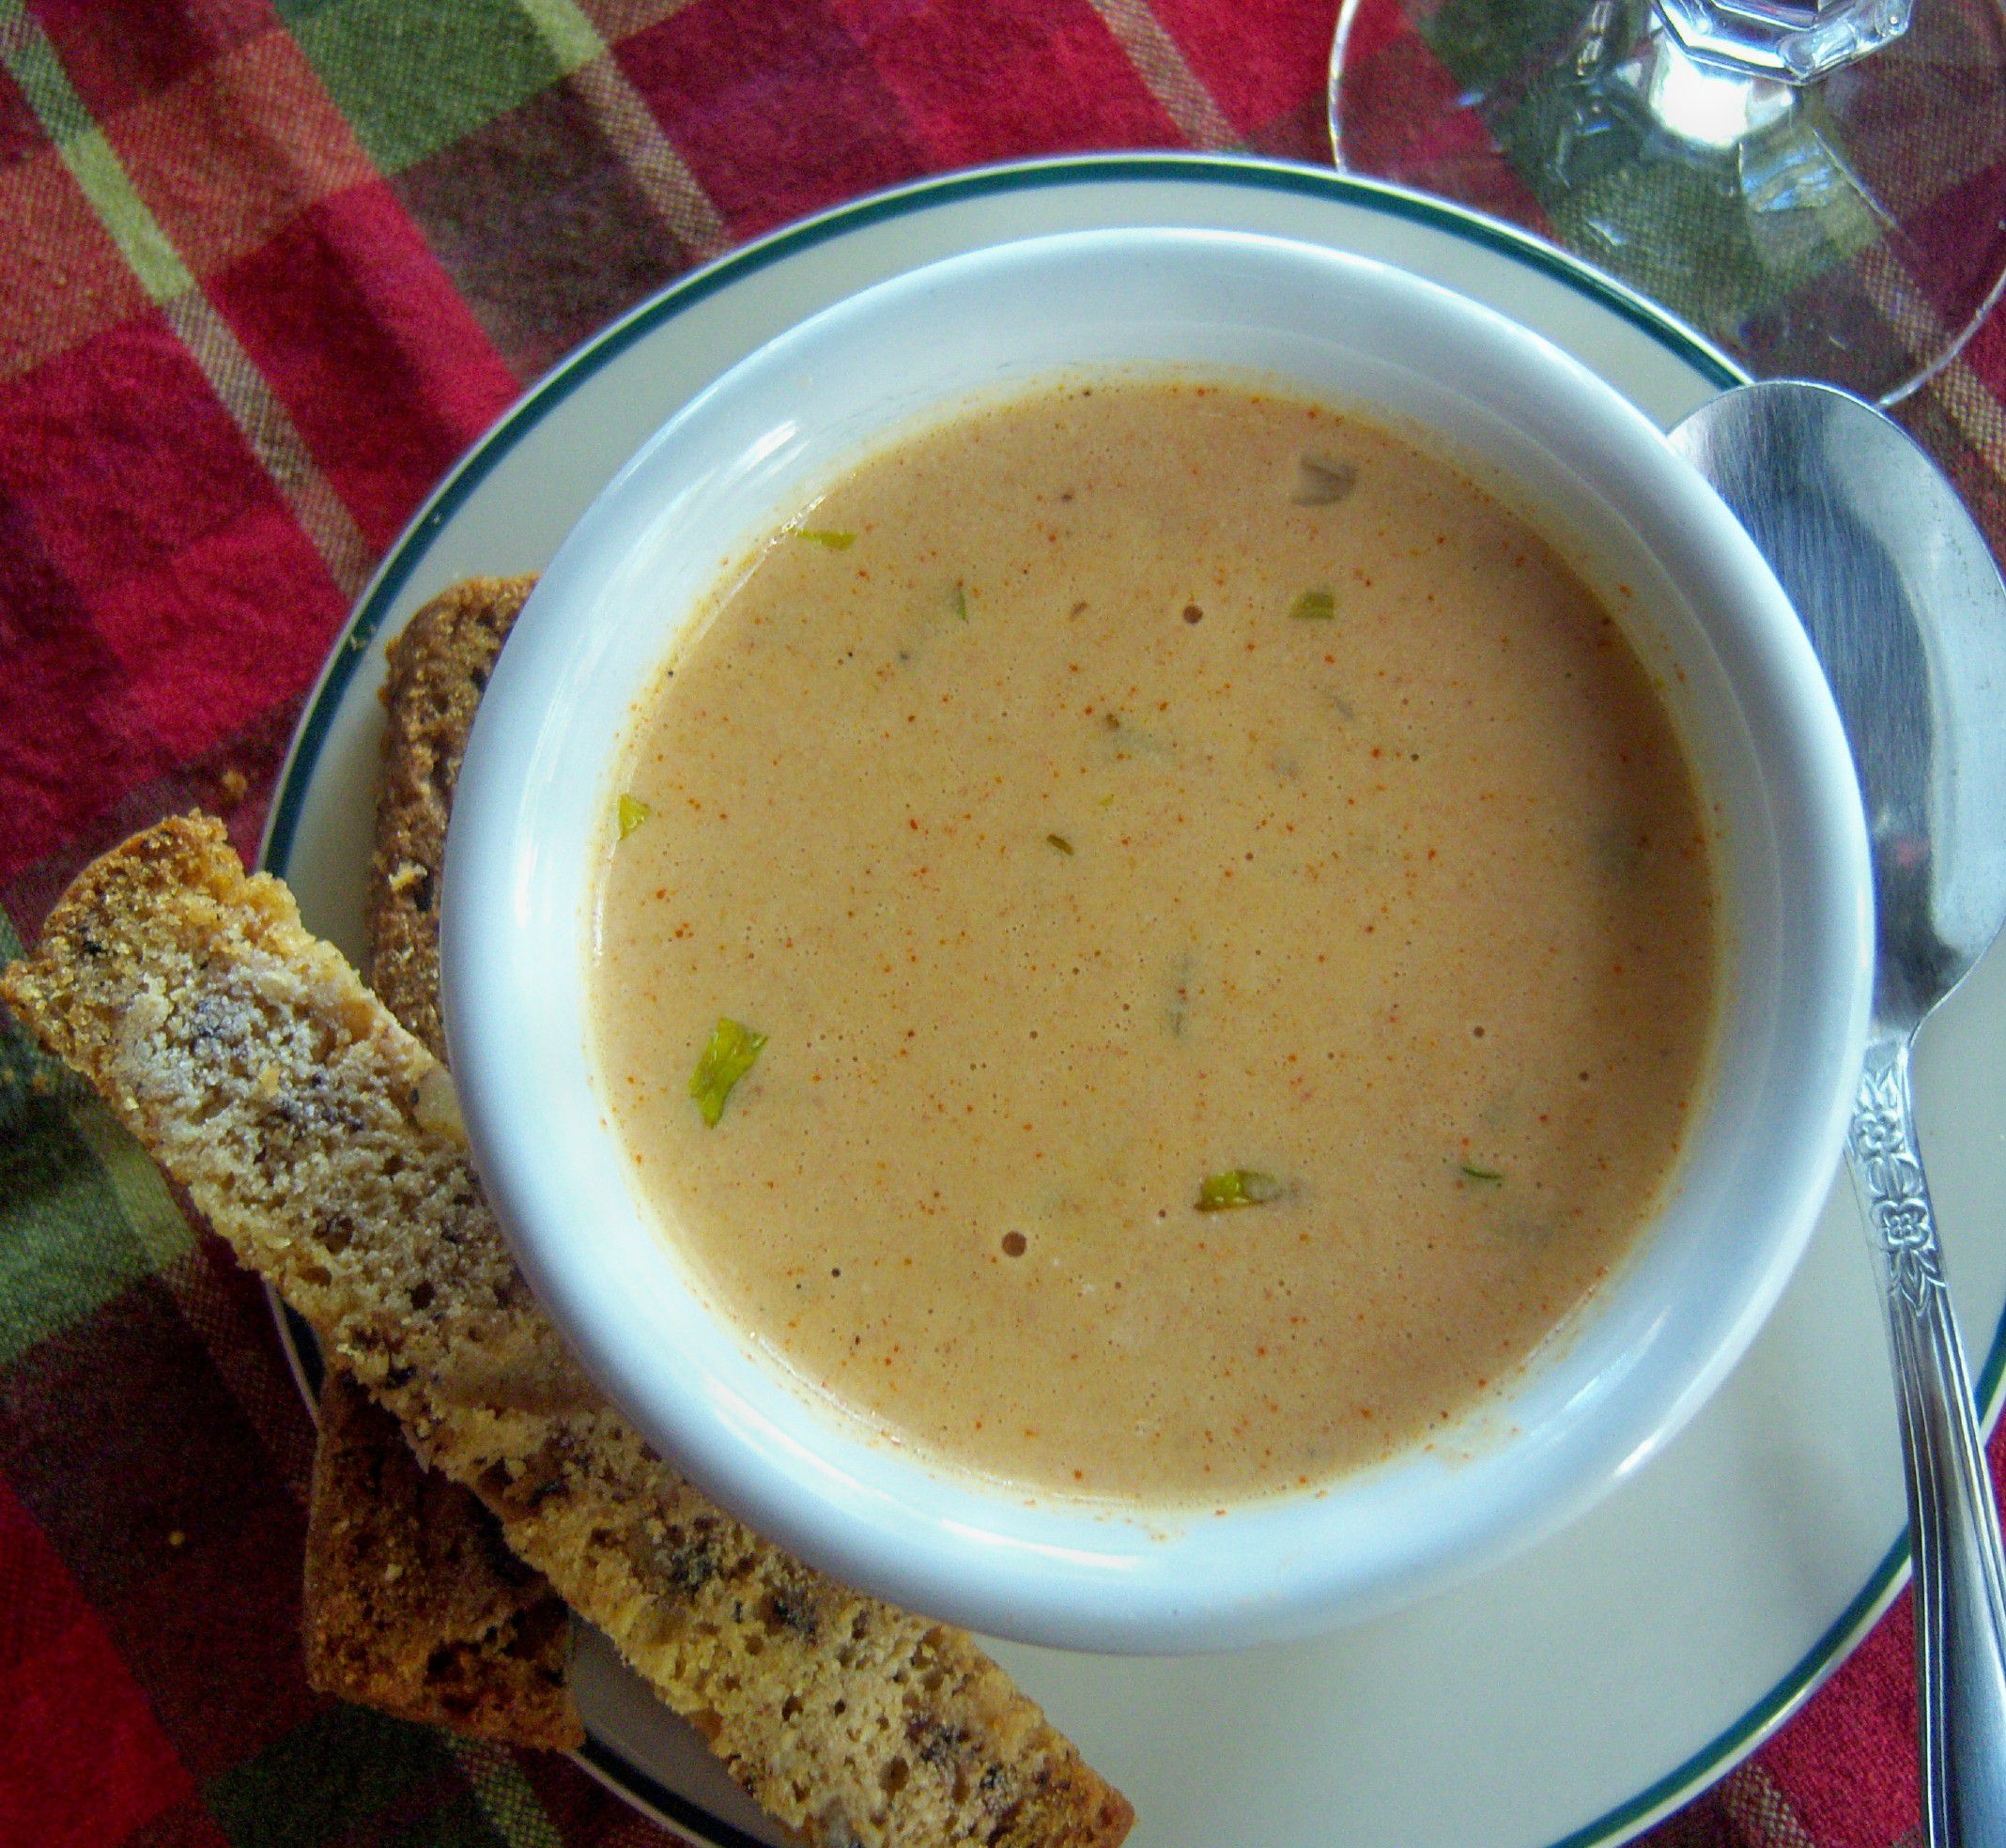 Lobster Bisque Recipes: Try This Easy Gluten-Free Lobster Bisque